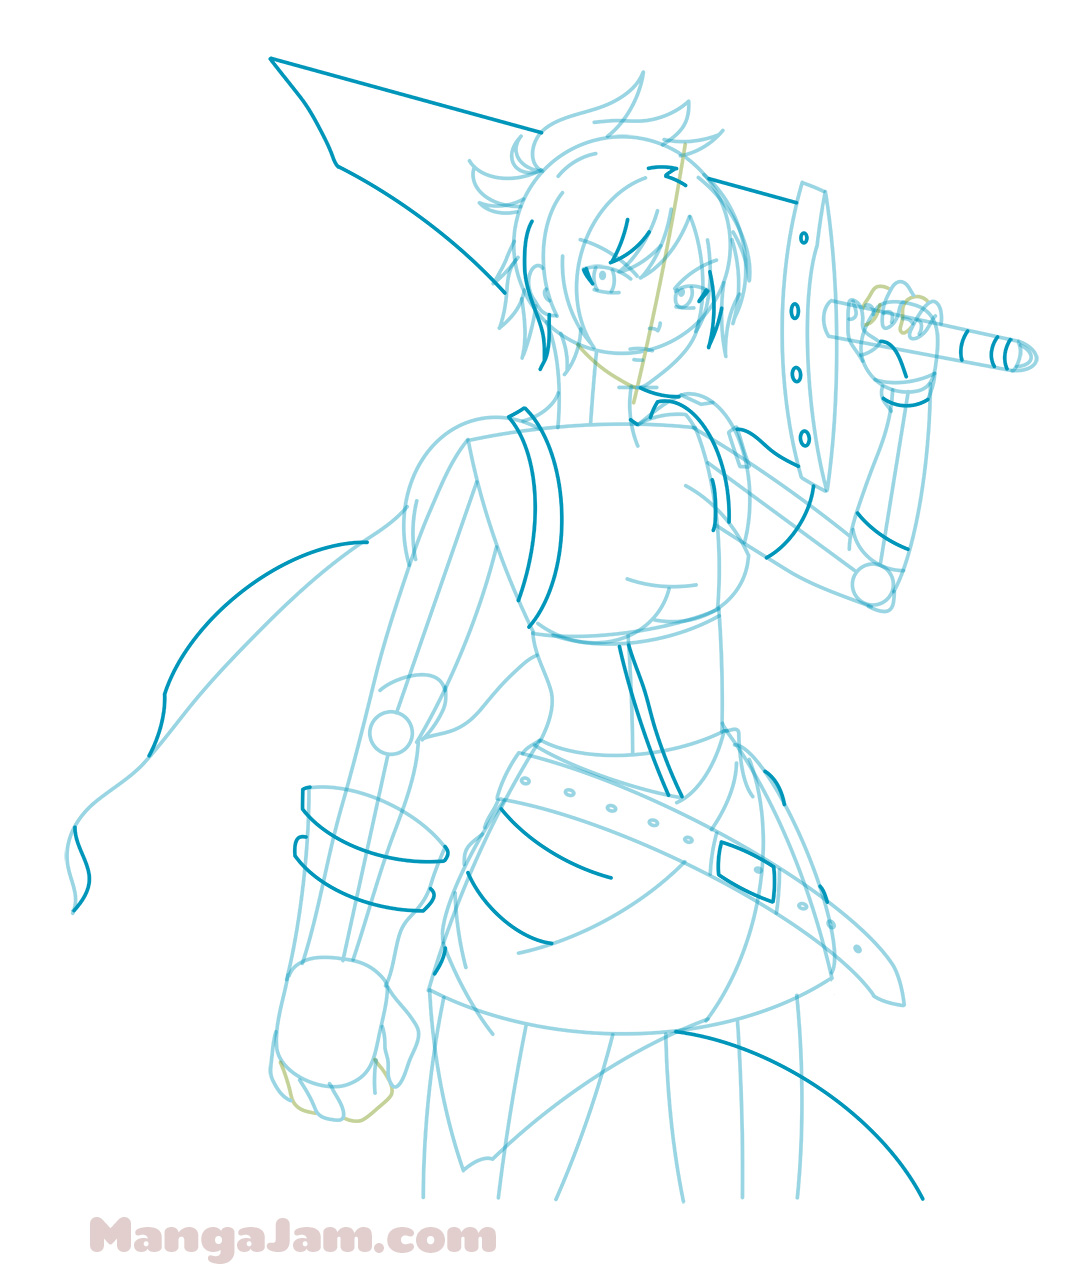 How To Draw Riven From League Of Legends Mangajam Com Add reddit concept to my collection. to draw riven from league of legends